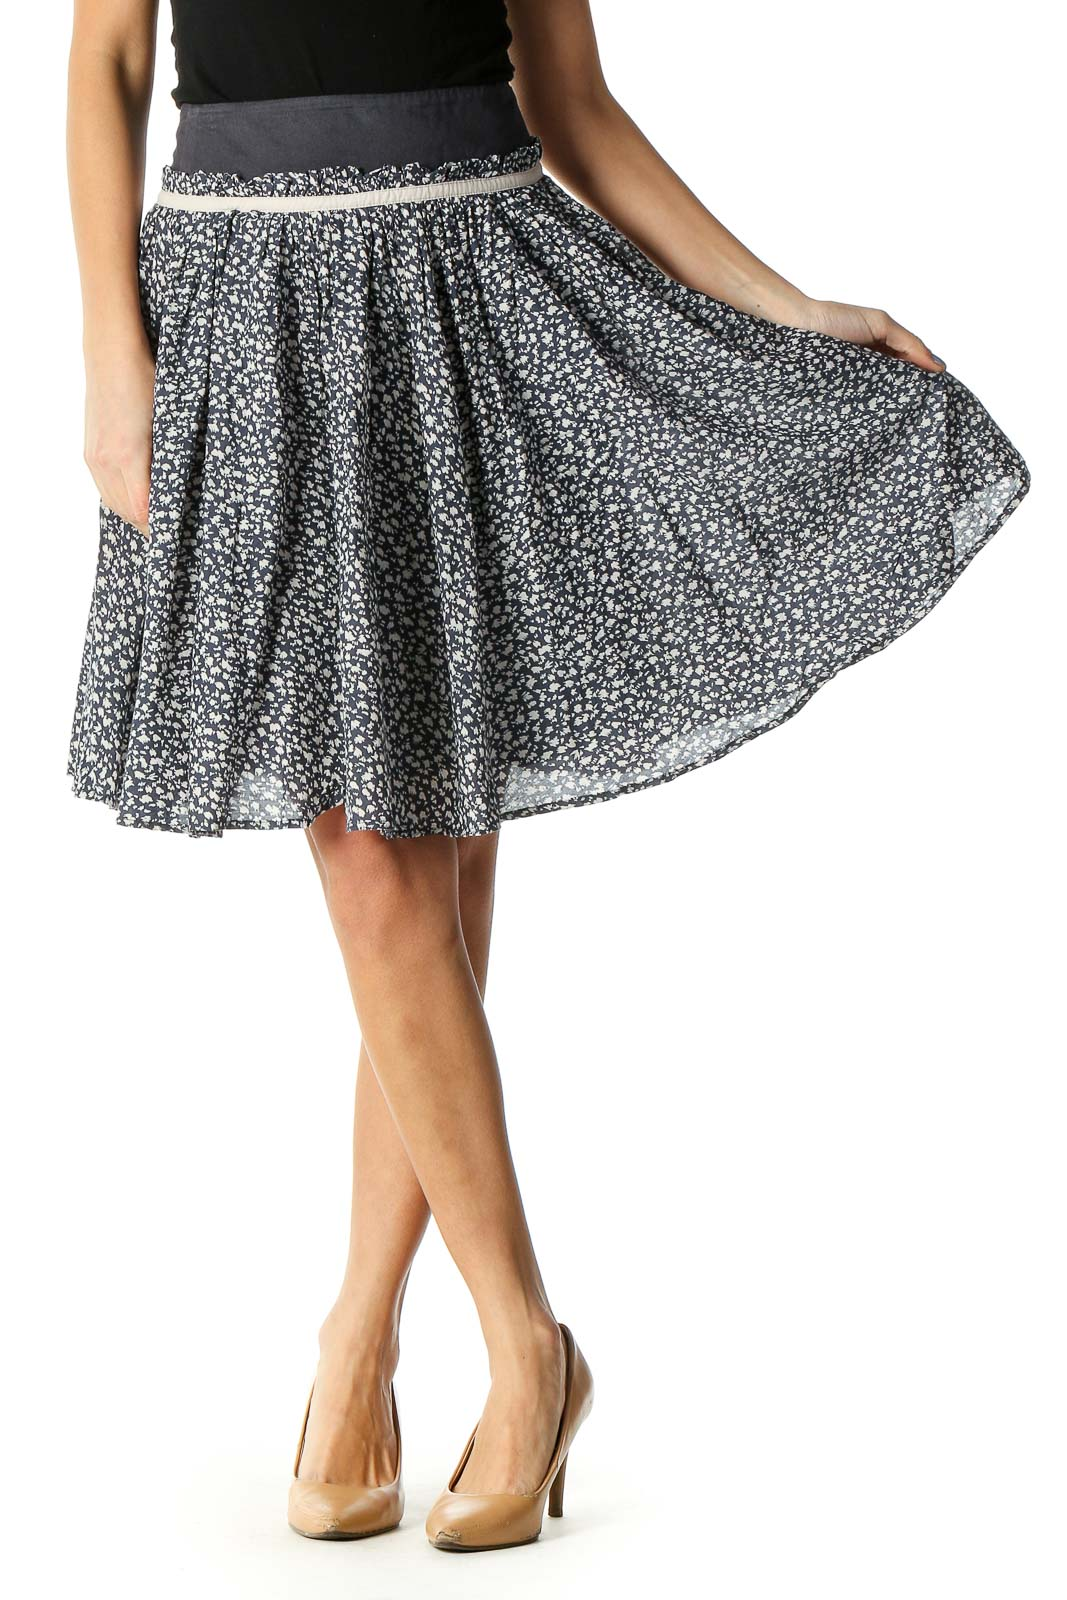 Black Animal Print Retro Flared Skirt Front